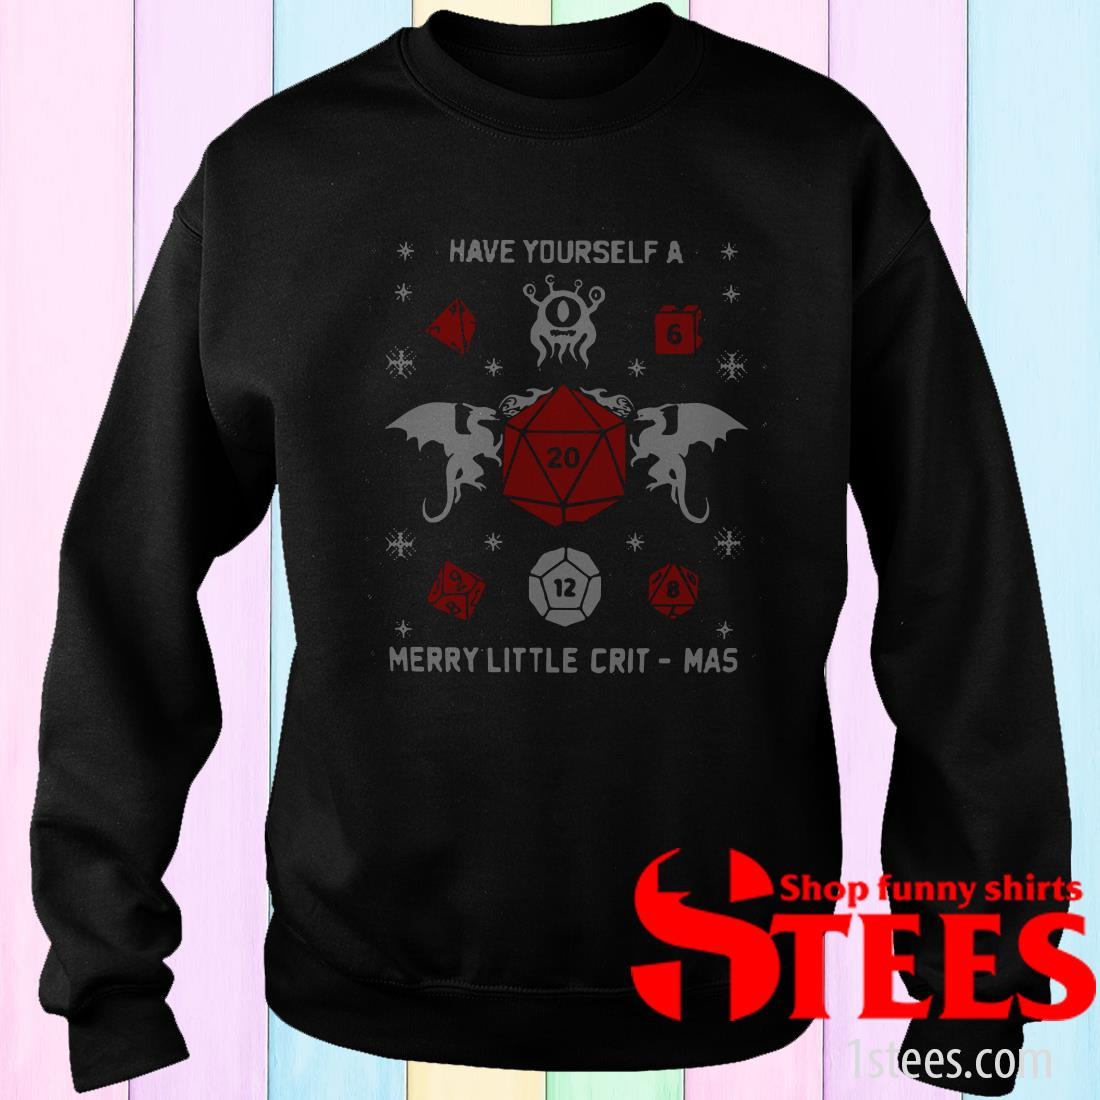 Have Yourself A Merry Little Crit Mas Ugly Christmas Sweatshirt